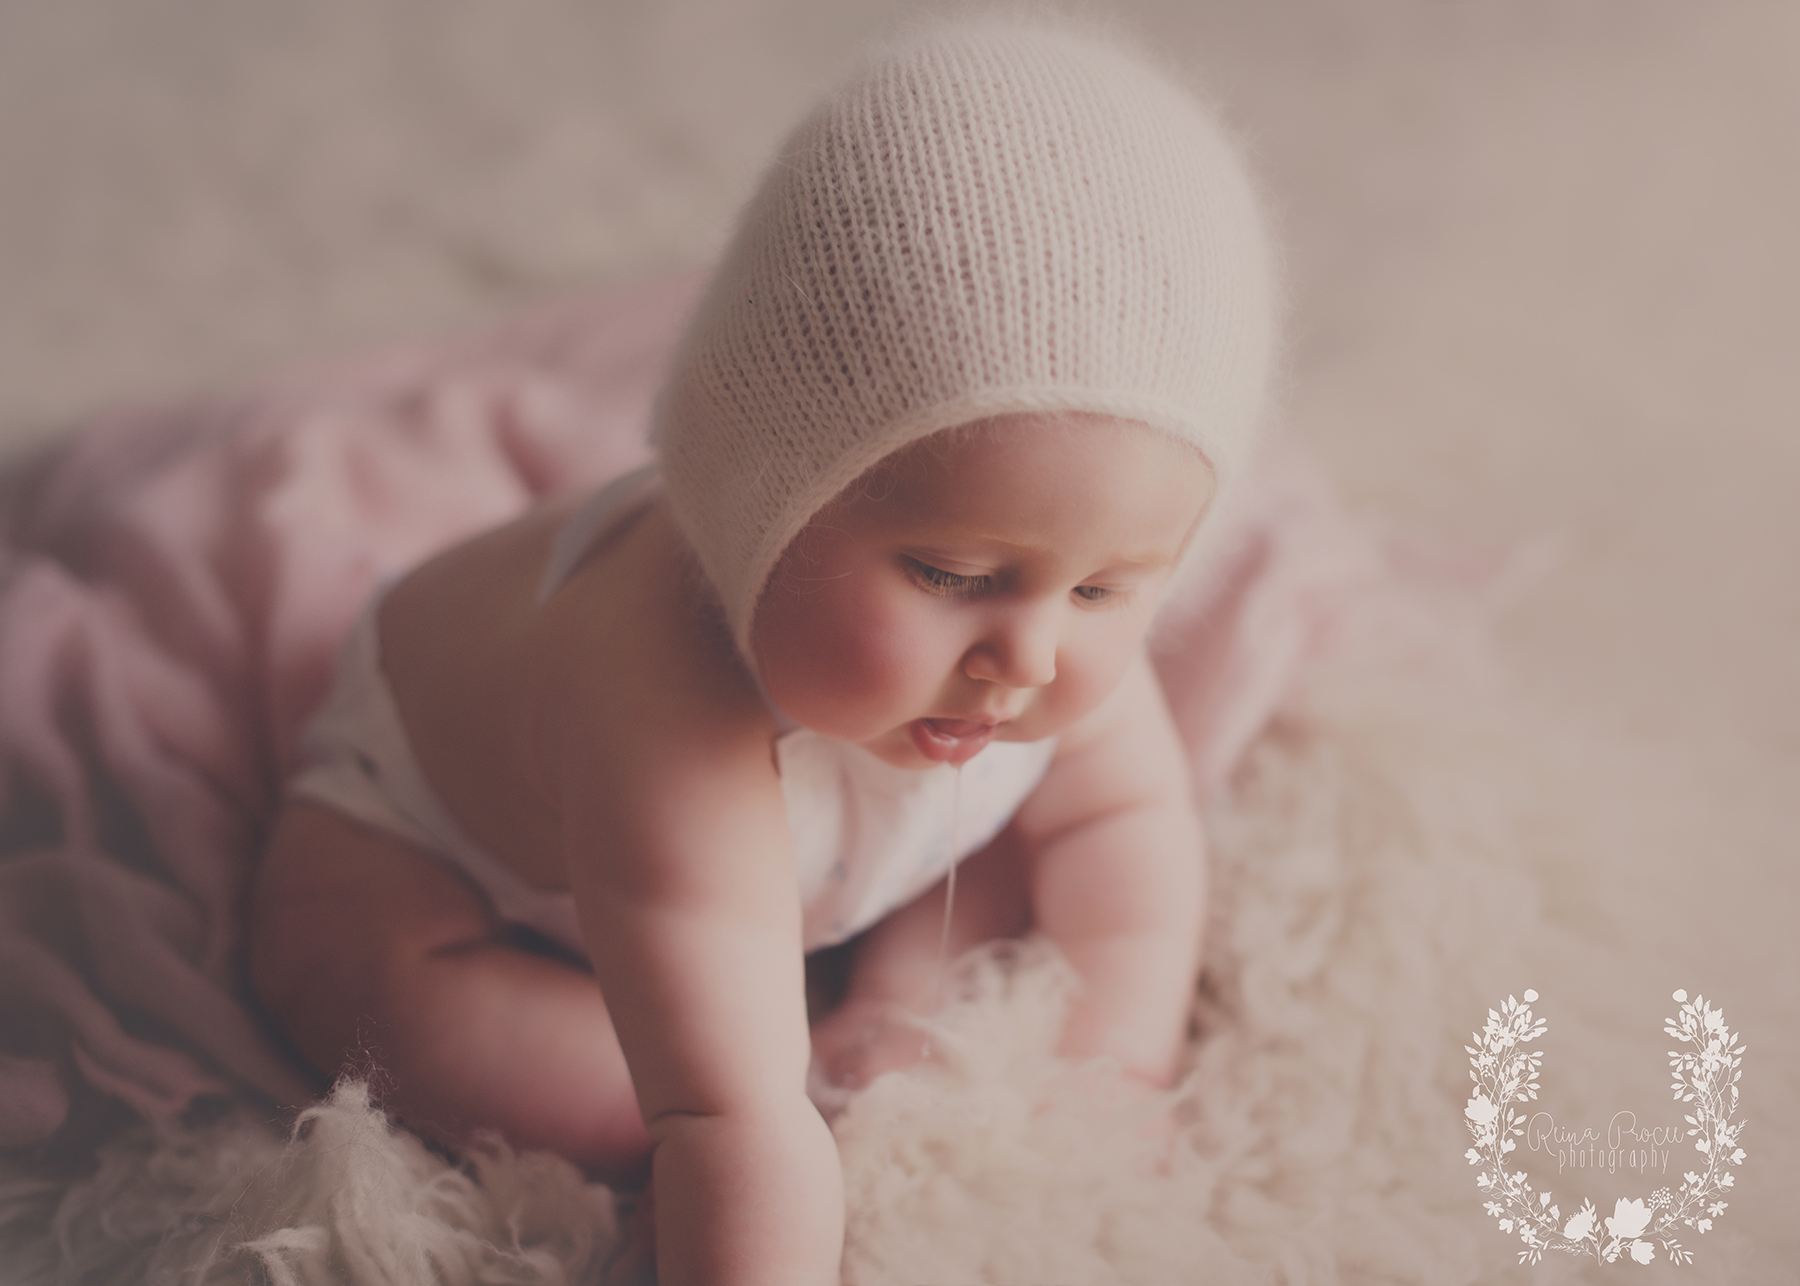 montreal-baby-pictures-sunset-6-months-beautiful-girl-04